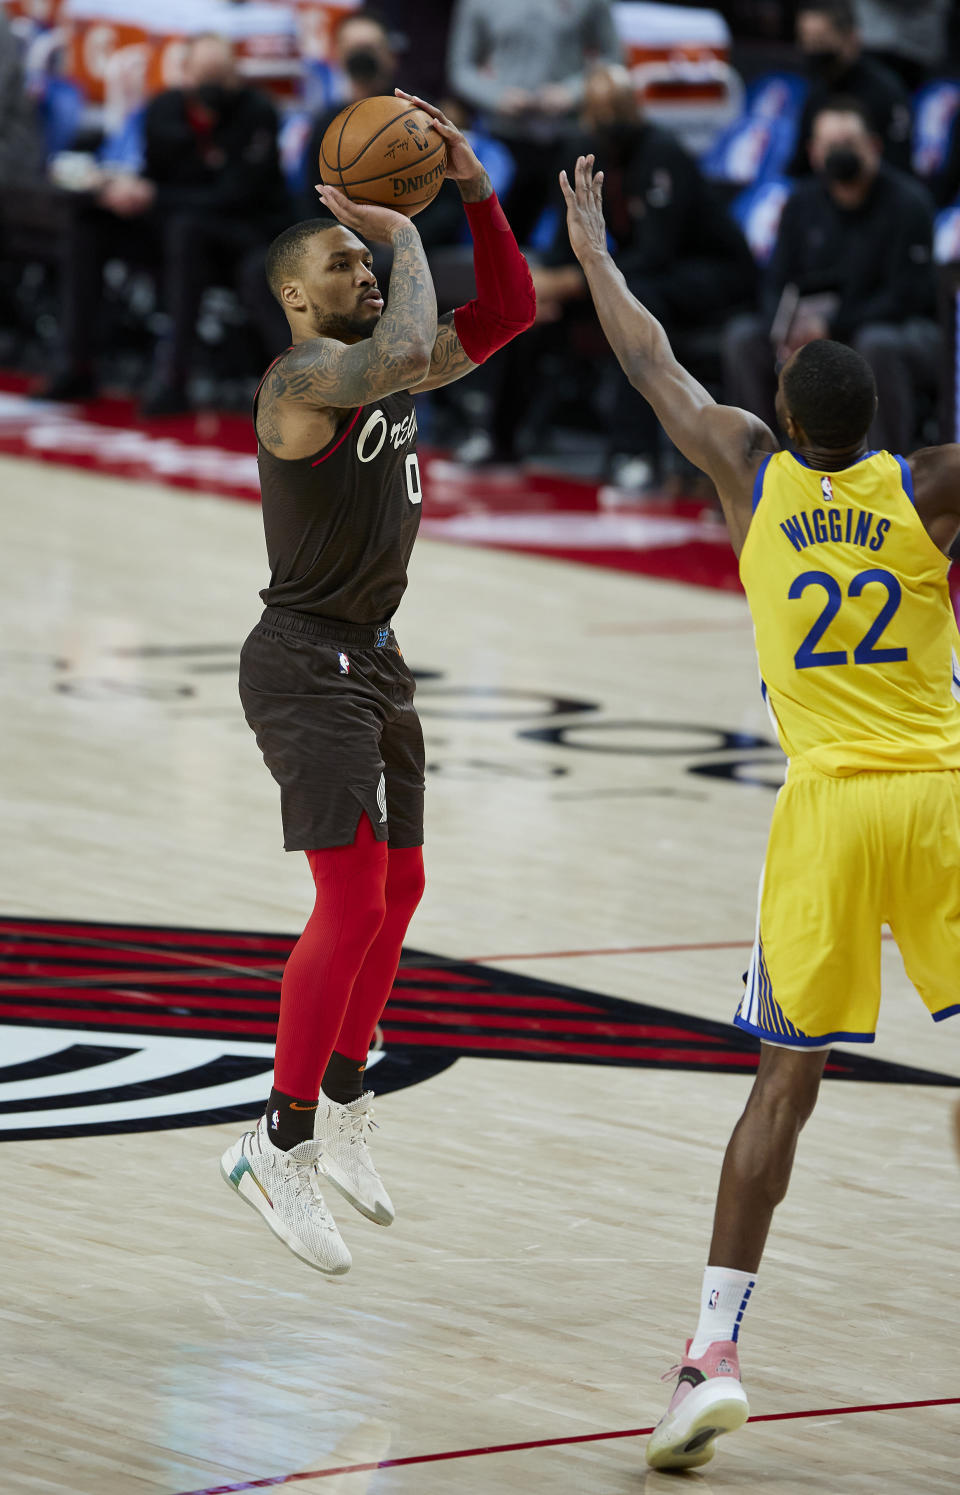 Portland Trail Blazers guard Damian Lillard shoots a 3-point basket over Golden State Warriors forward Andrew Wiggins during the second half of an NBA basketball game in Portland, Ore., Wednesday, March 3, 2021. (AP Photo/Craig Mitchelldyer)